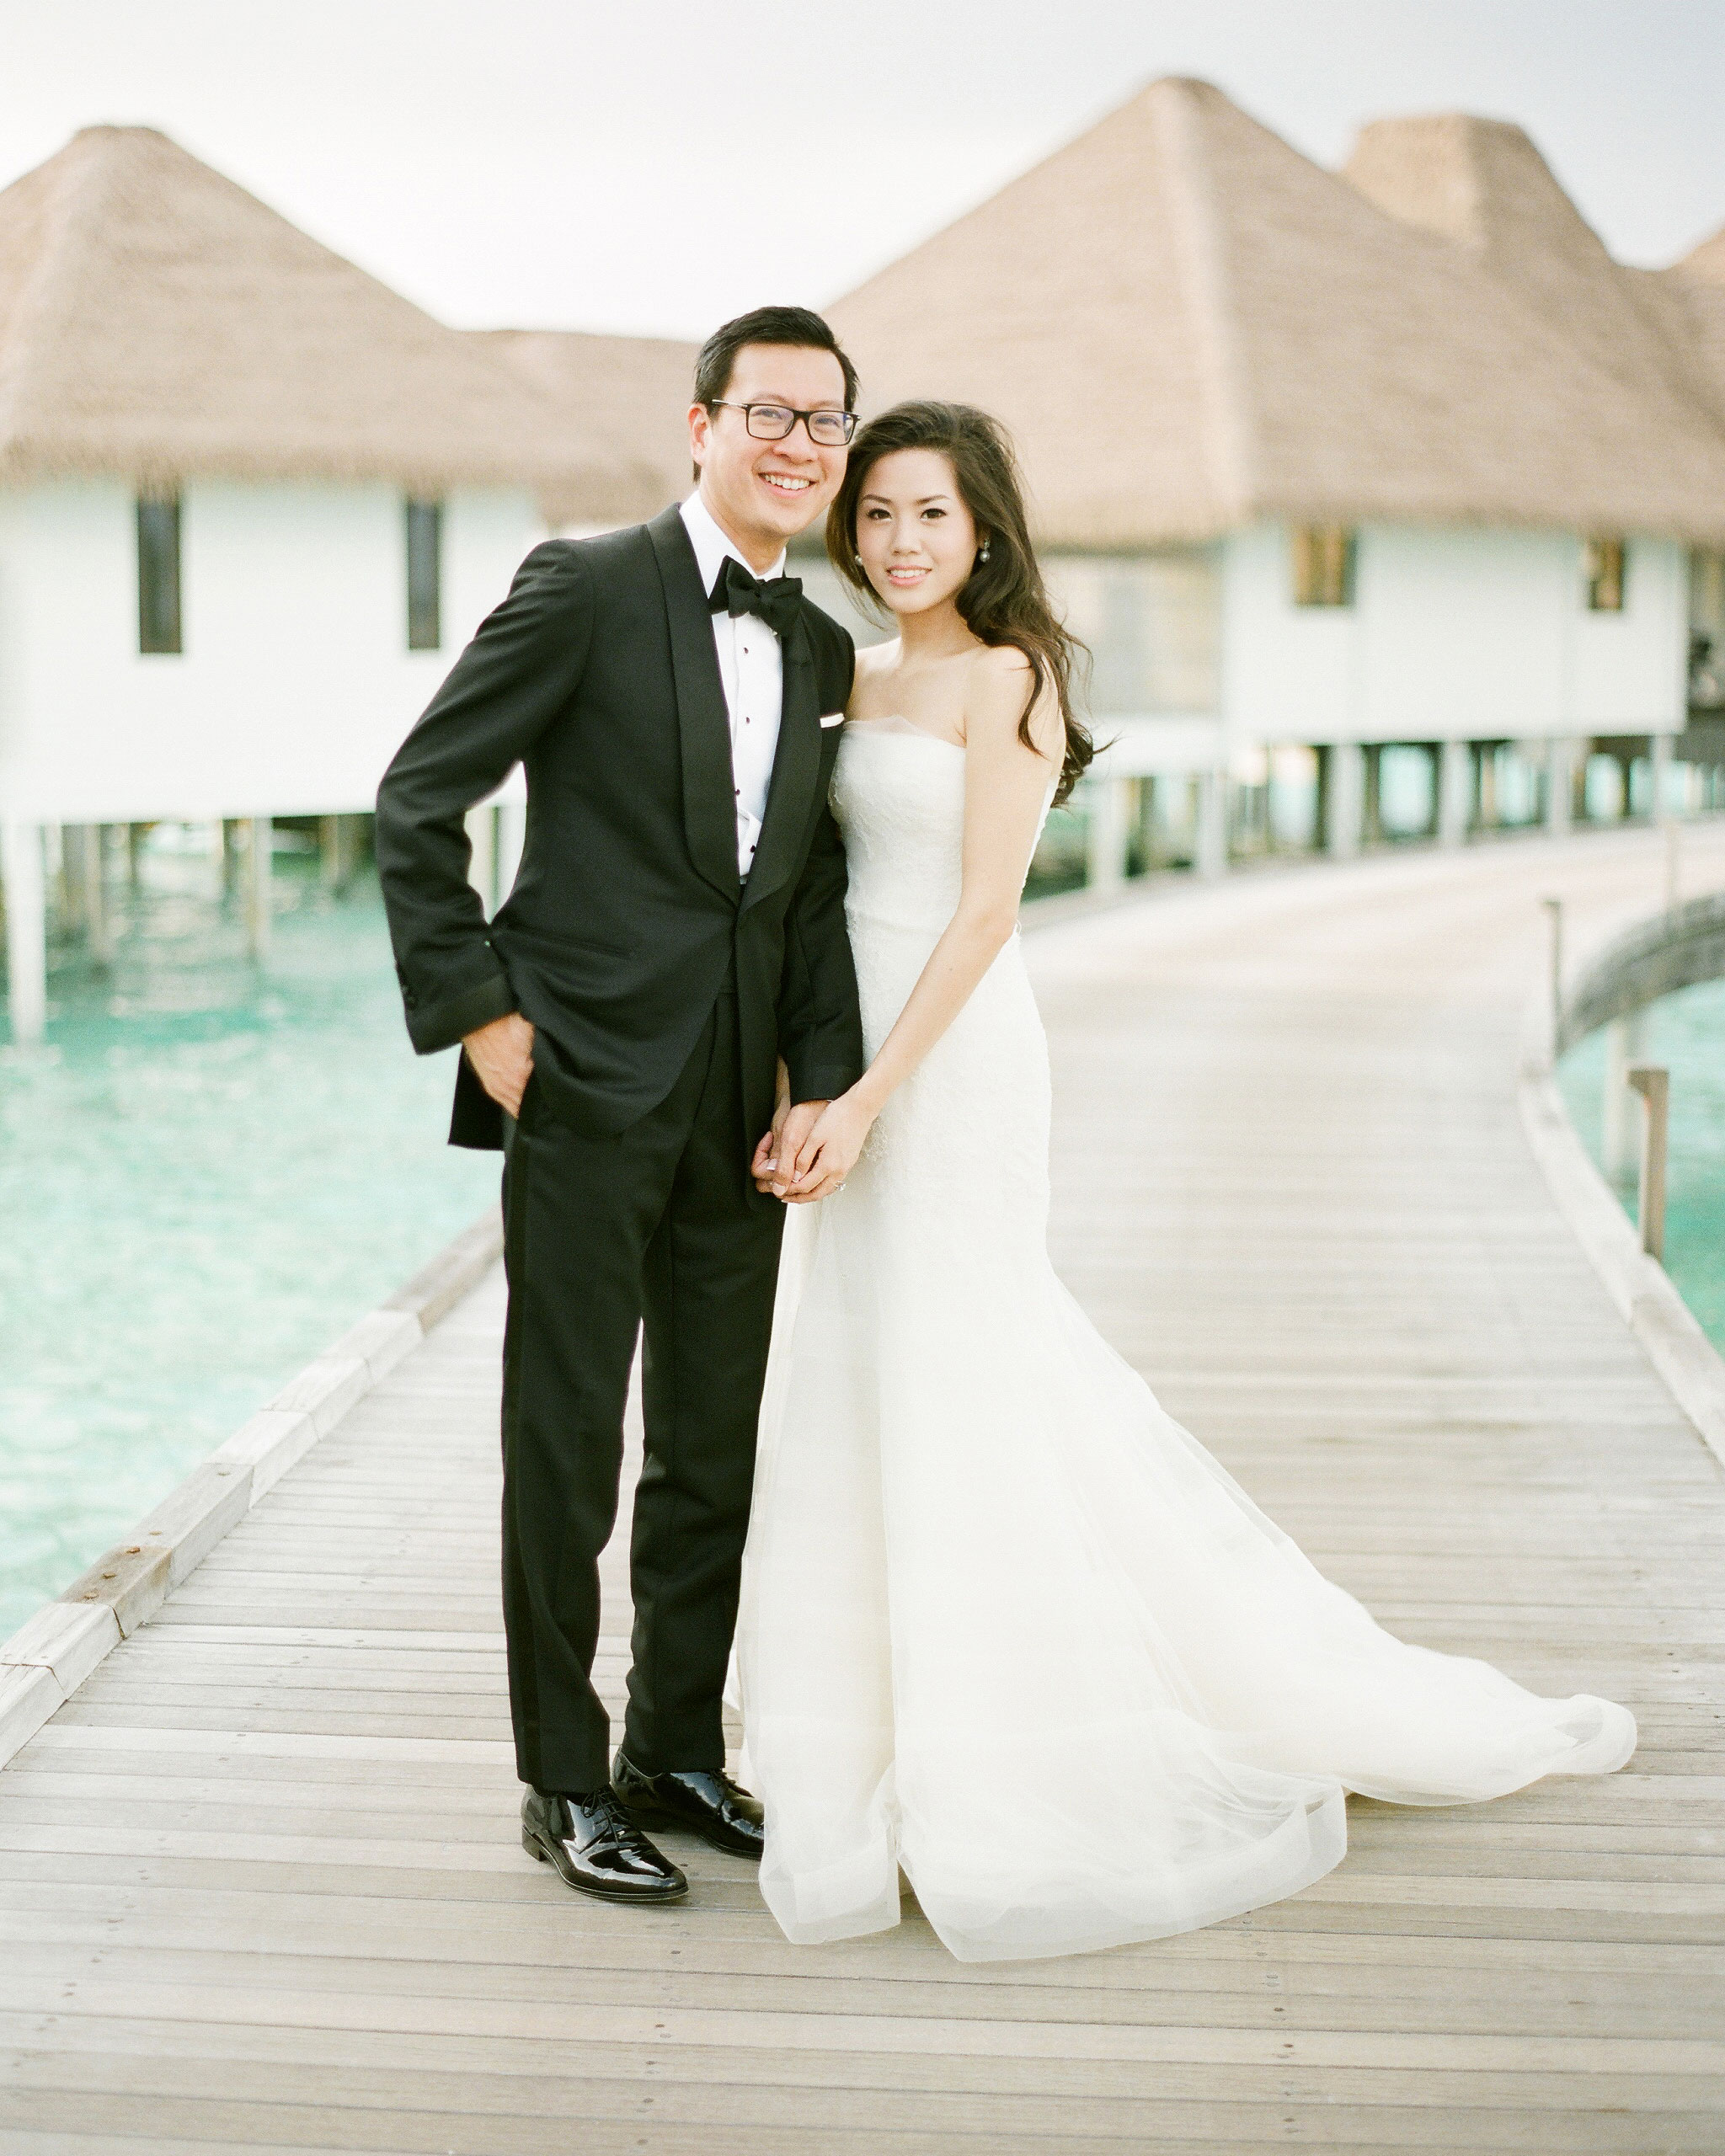 peony-richard-wedding-maldives-boardwalk-couple-0136-s112383.jpg